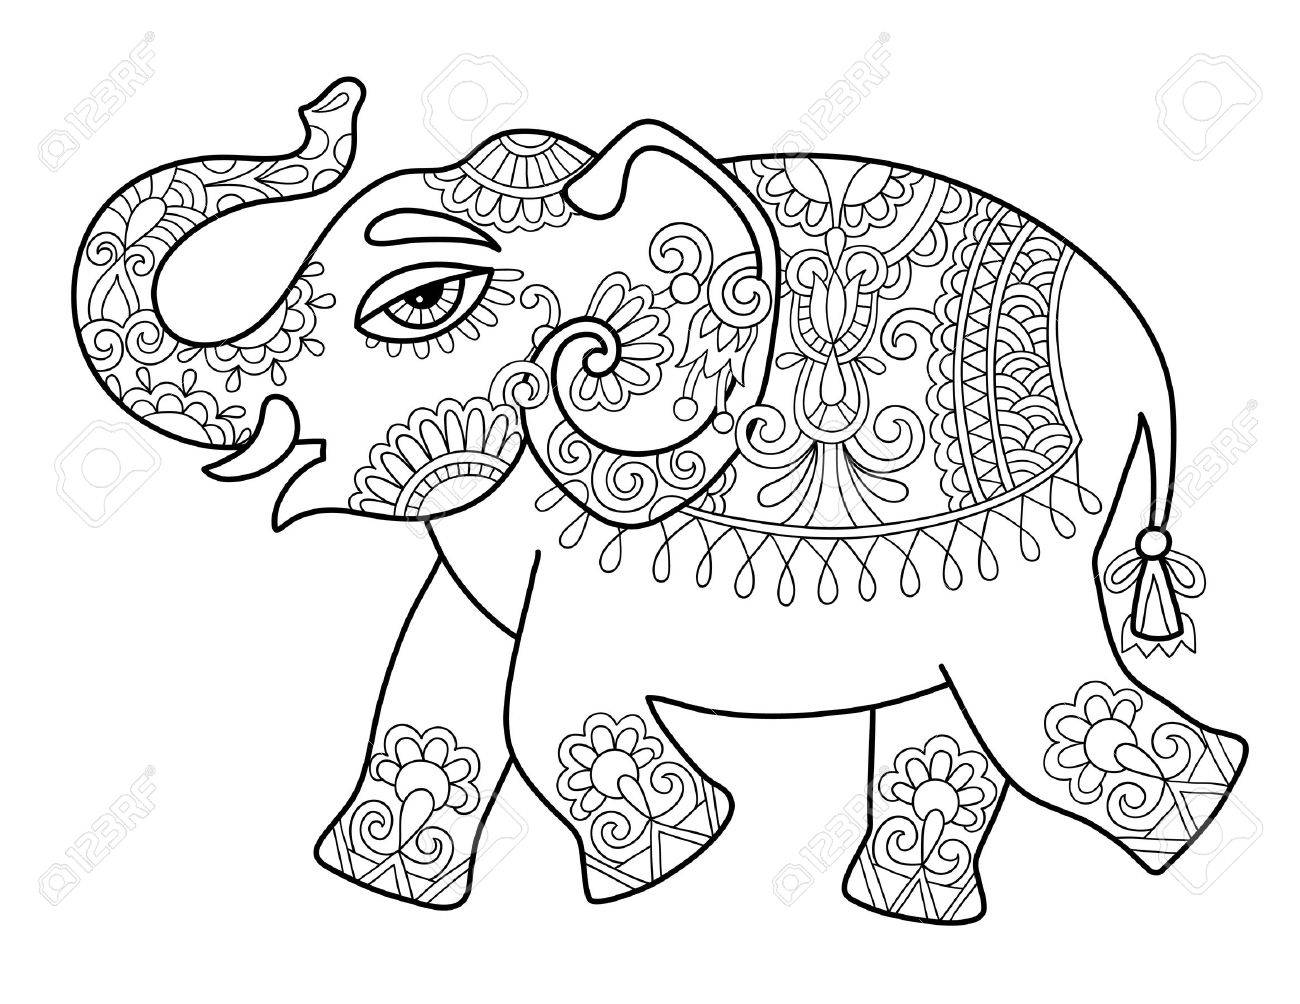 Ethnic Indian Elephant Line Original Drawing, Adults Coloring ...